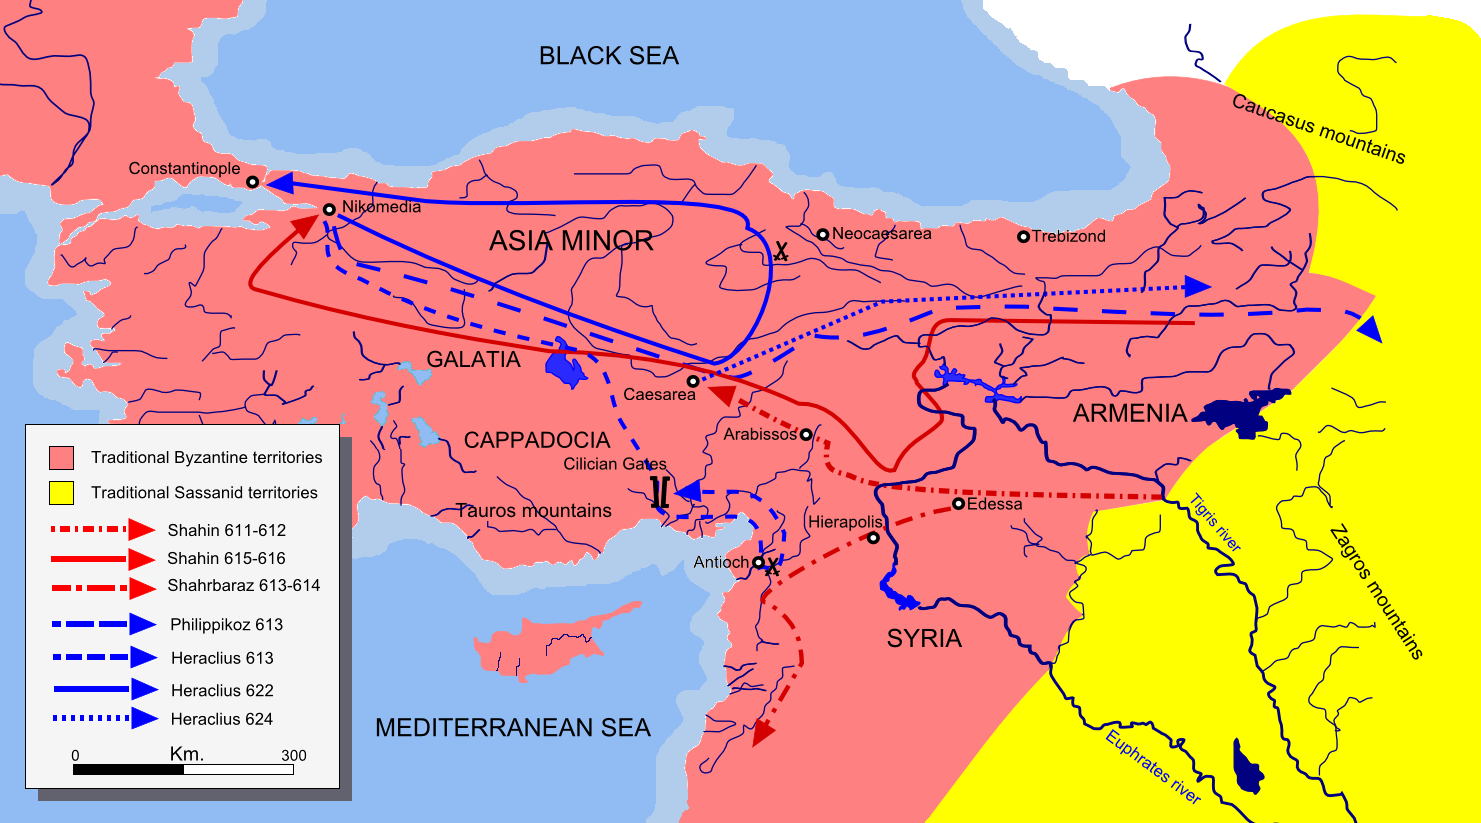 a history of the persian conflict and the byzantines answer Patriarch nikephoros' brief history suggests that rhahzadh  along with the cumulative effects of a century of almost continuous byzantine-persian conflict, left.